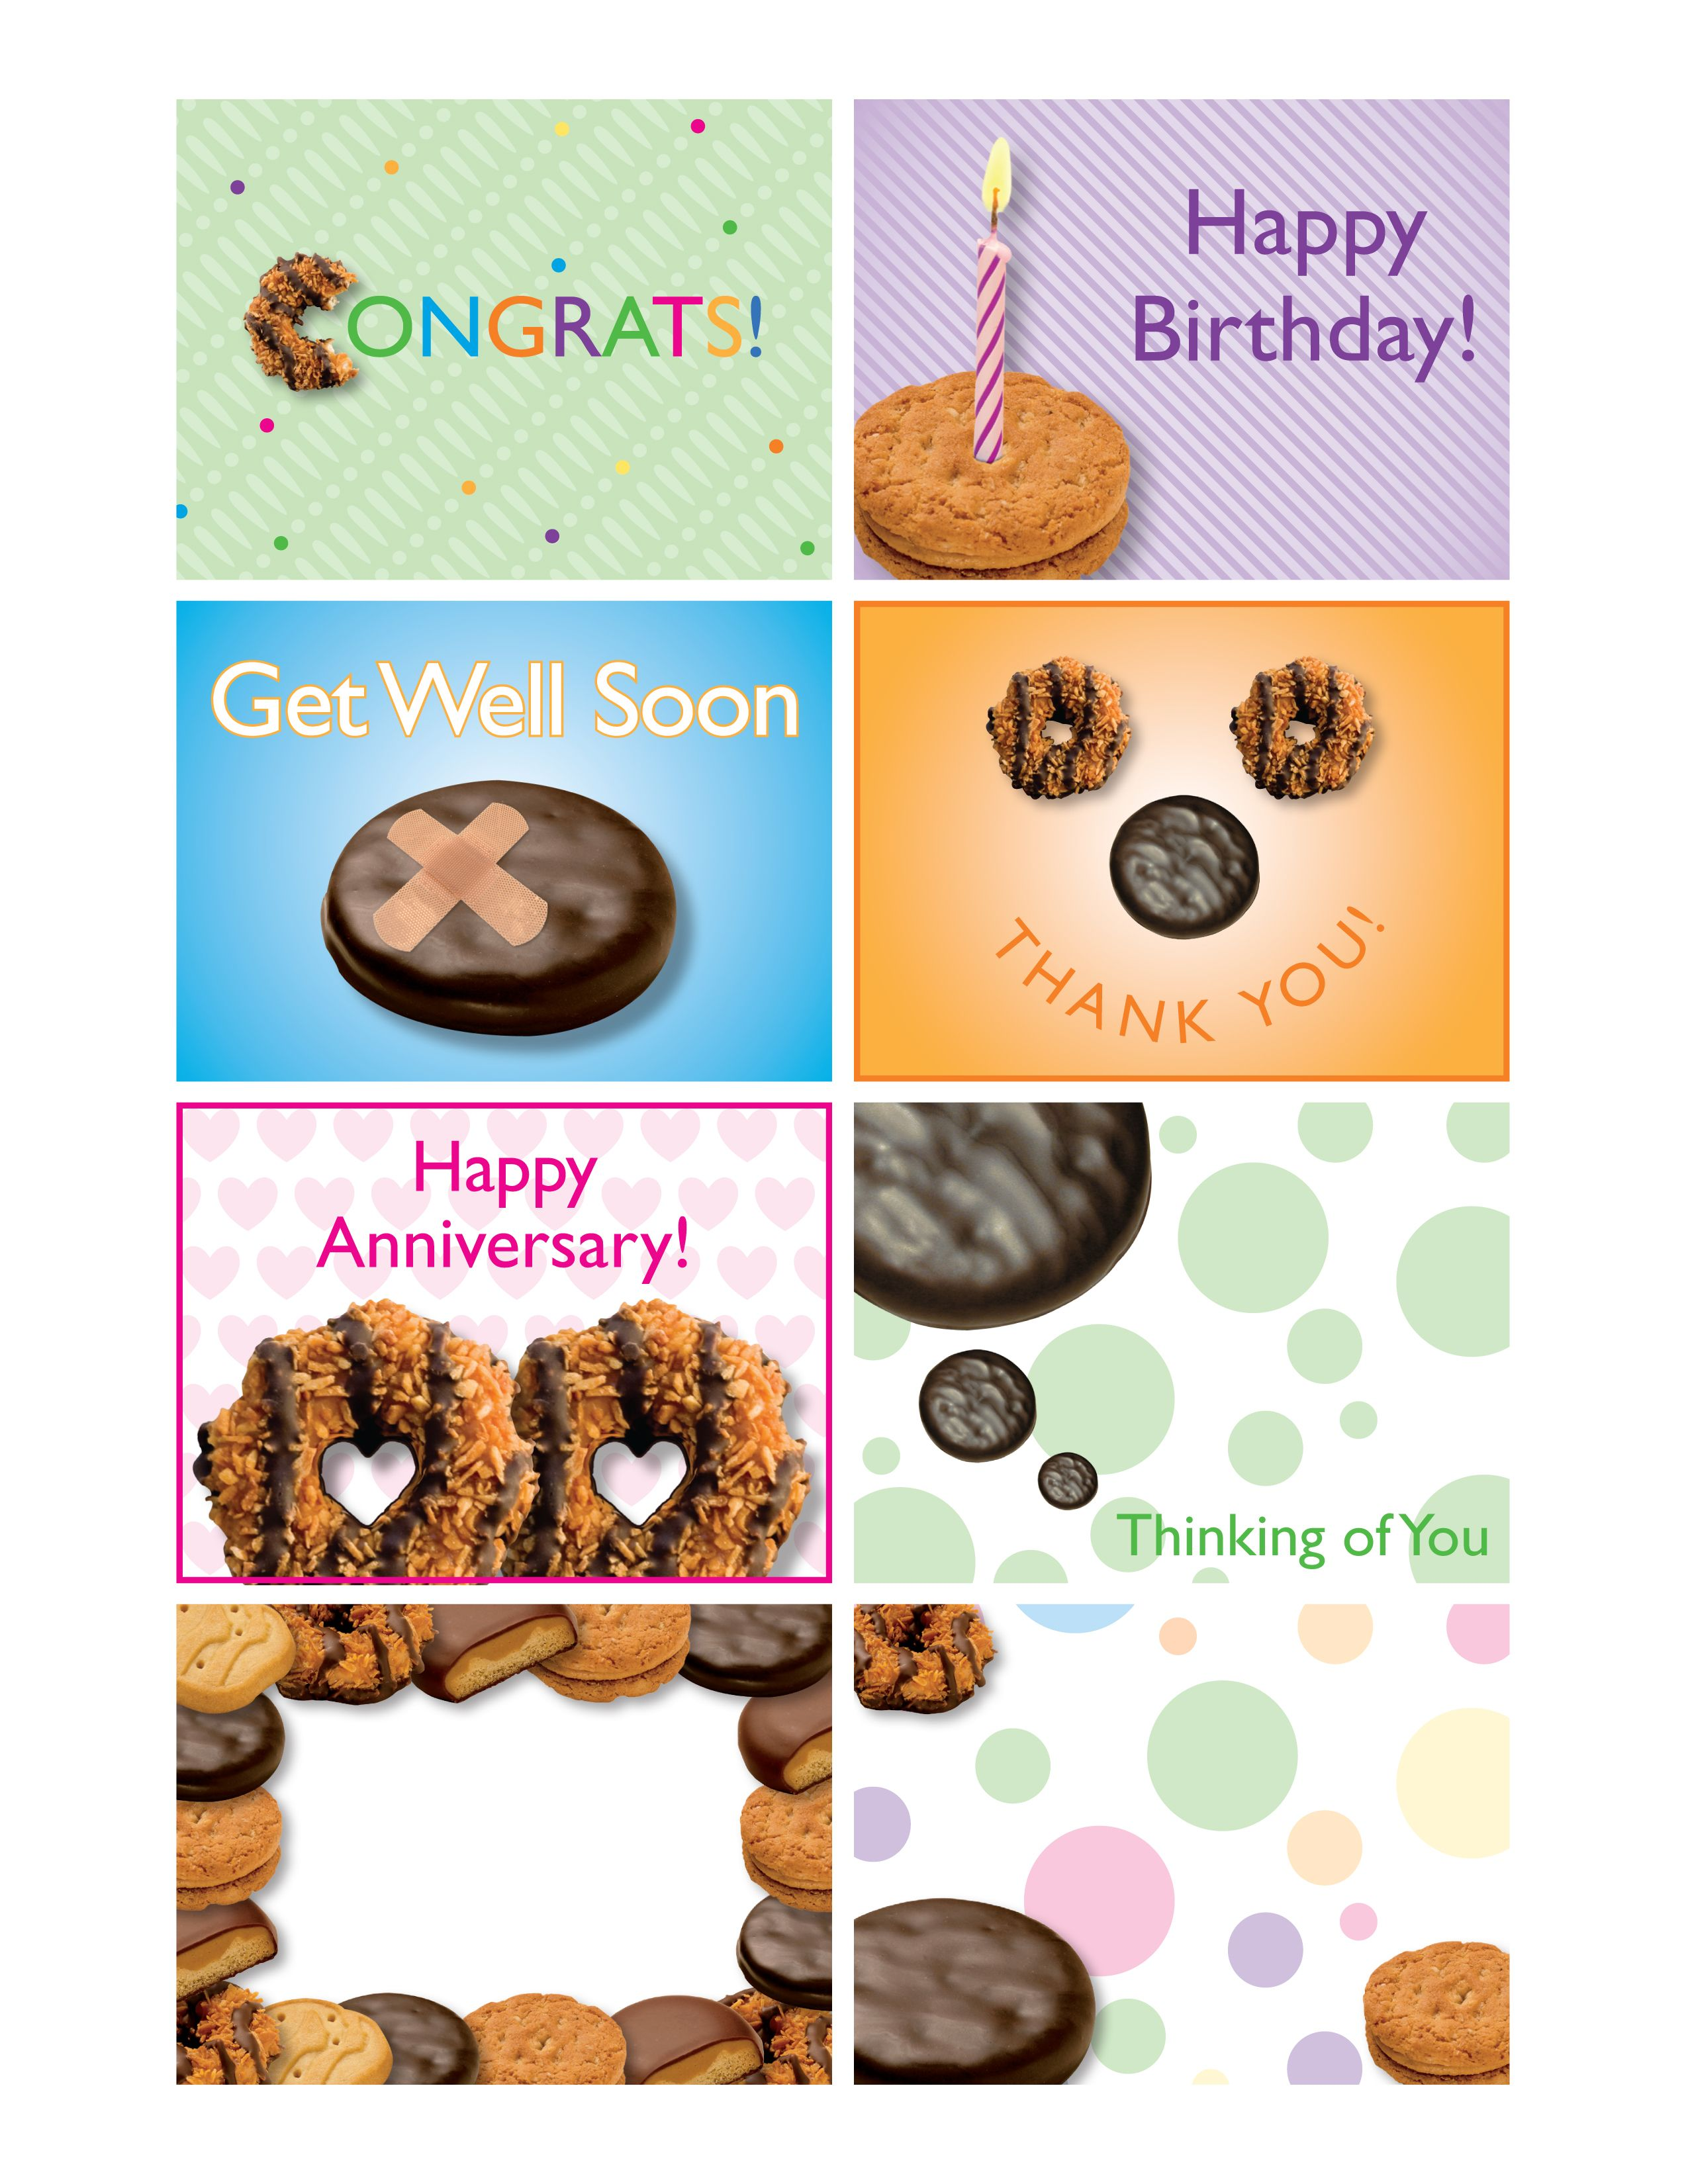 Girl scout scrapbook ideas - Find This Pin And More On Girls Scouts